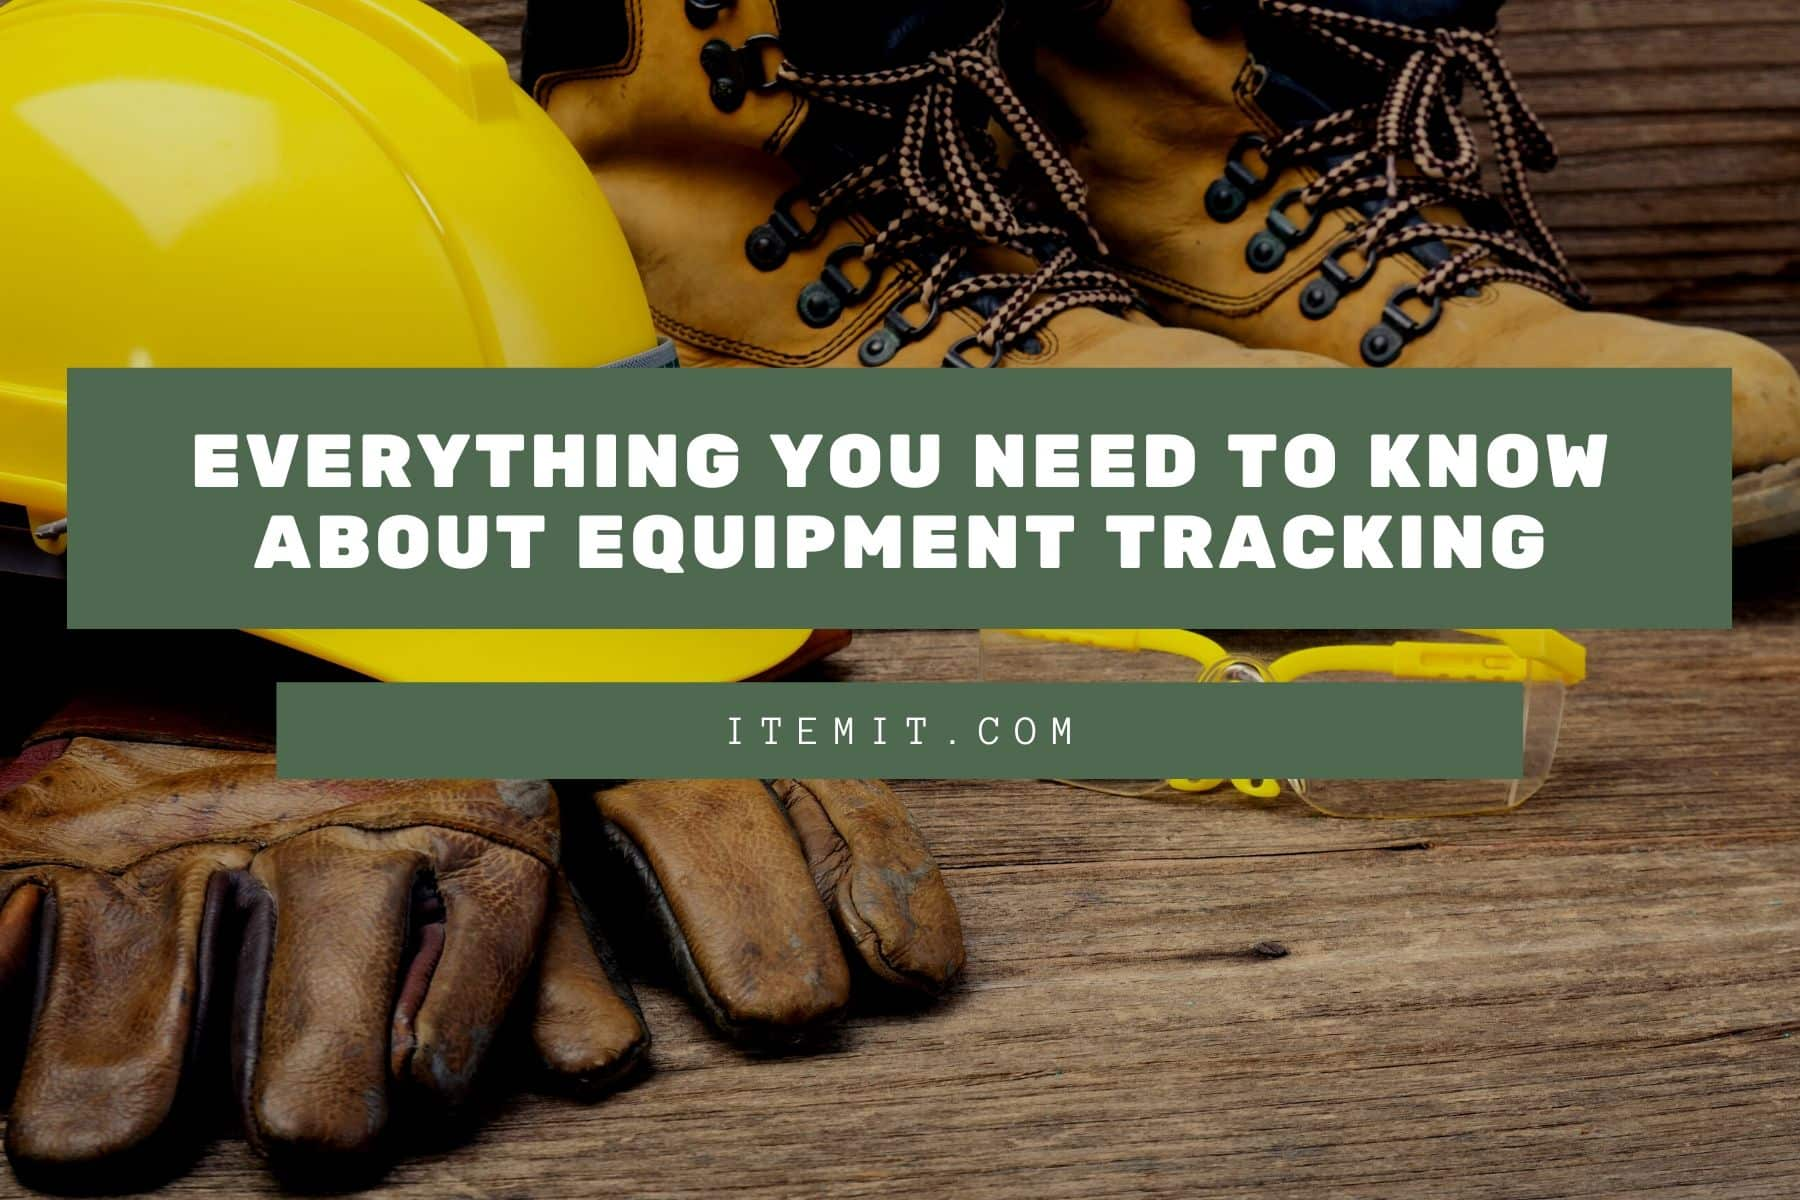 Equipment tracking everything you need to know